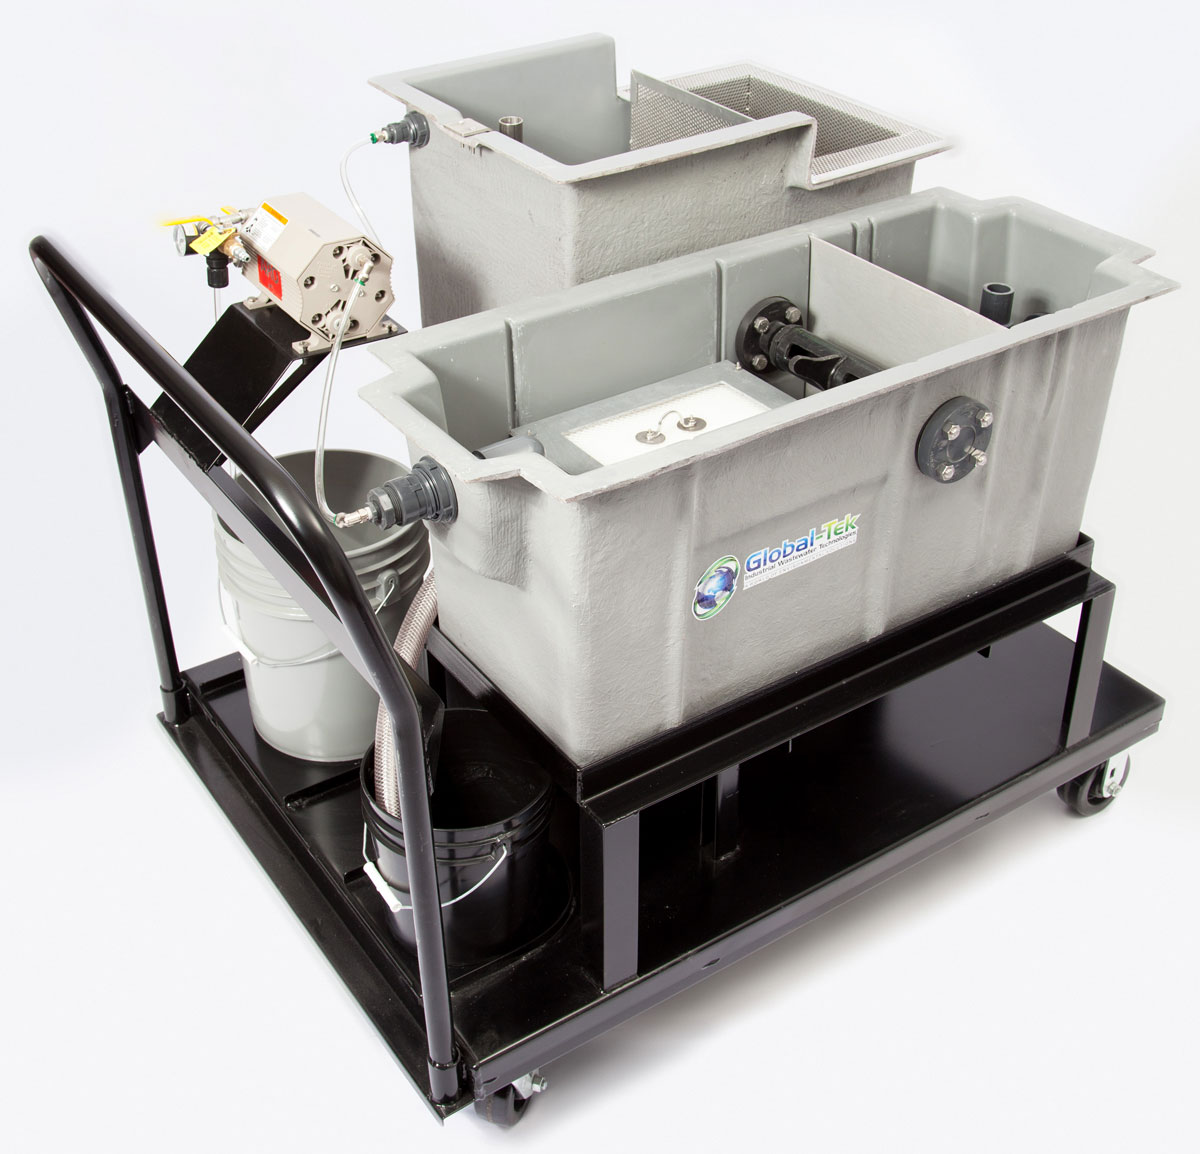 global-tek oil water separator with mobile cart